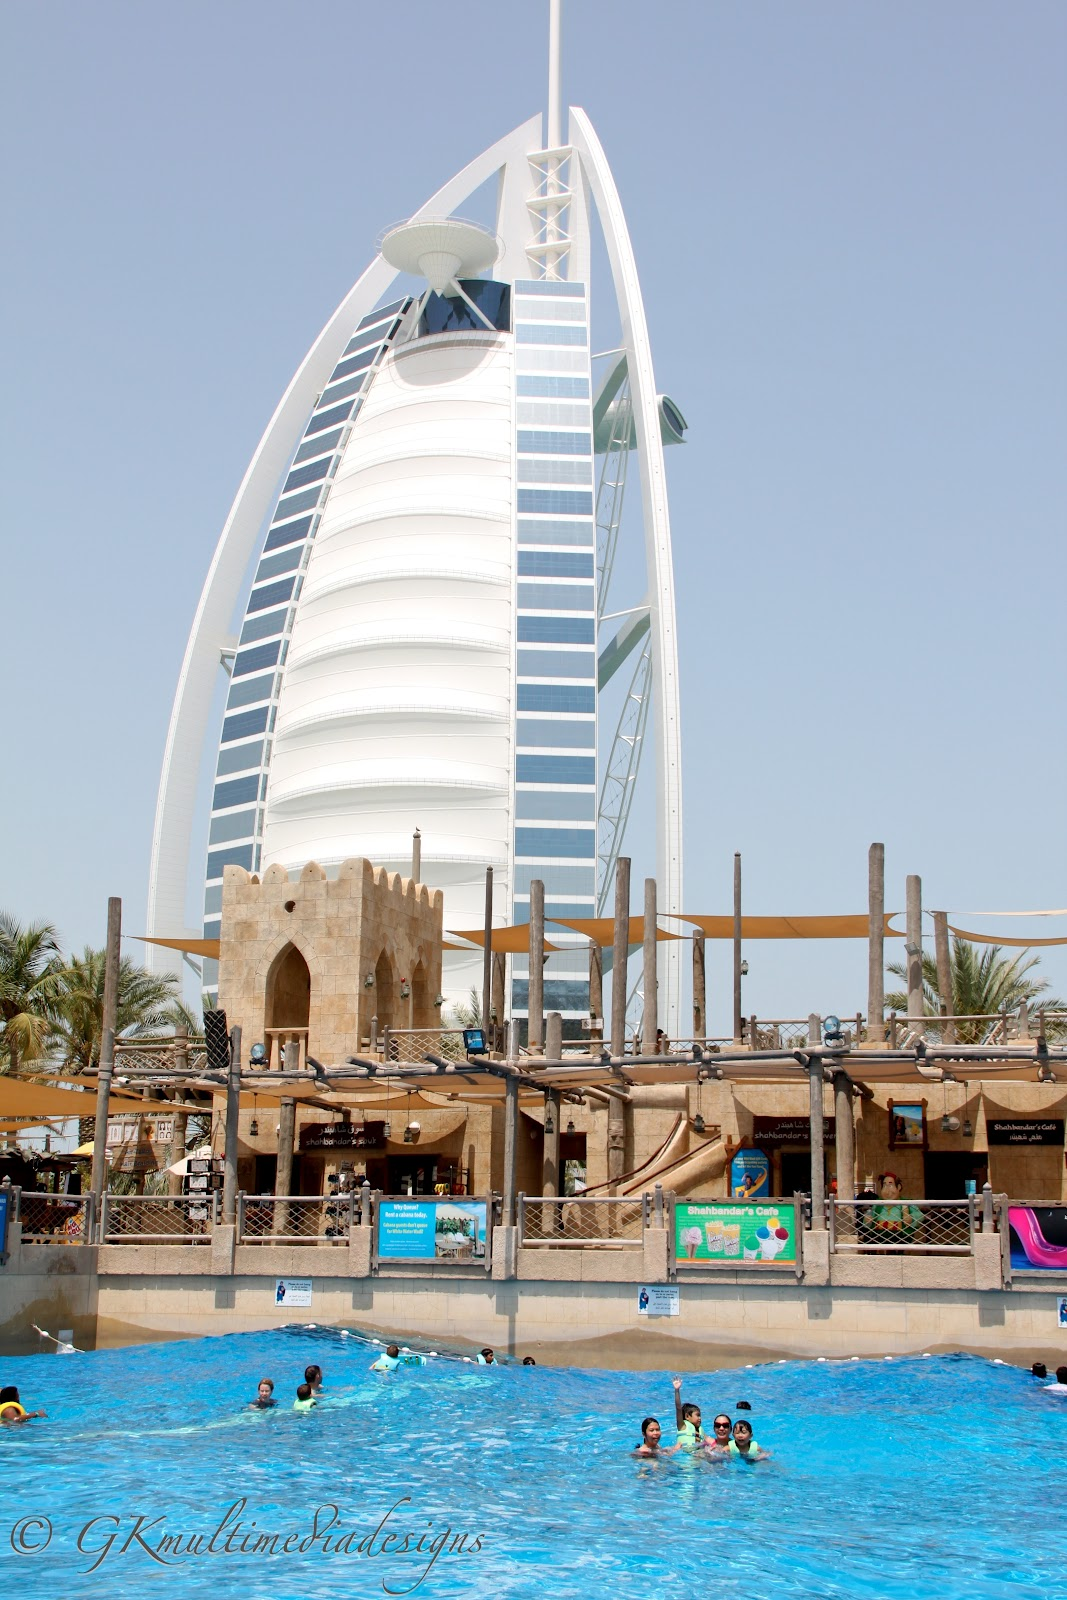 Anything under the sun burj al arab a seven star hotel Dubai hotel pictures 7 star